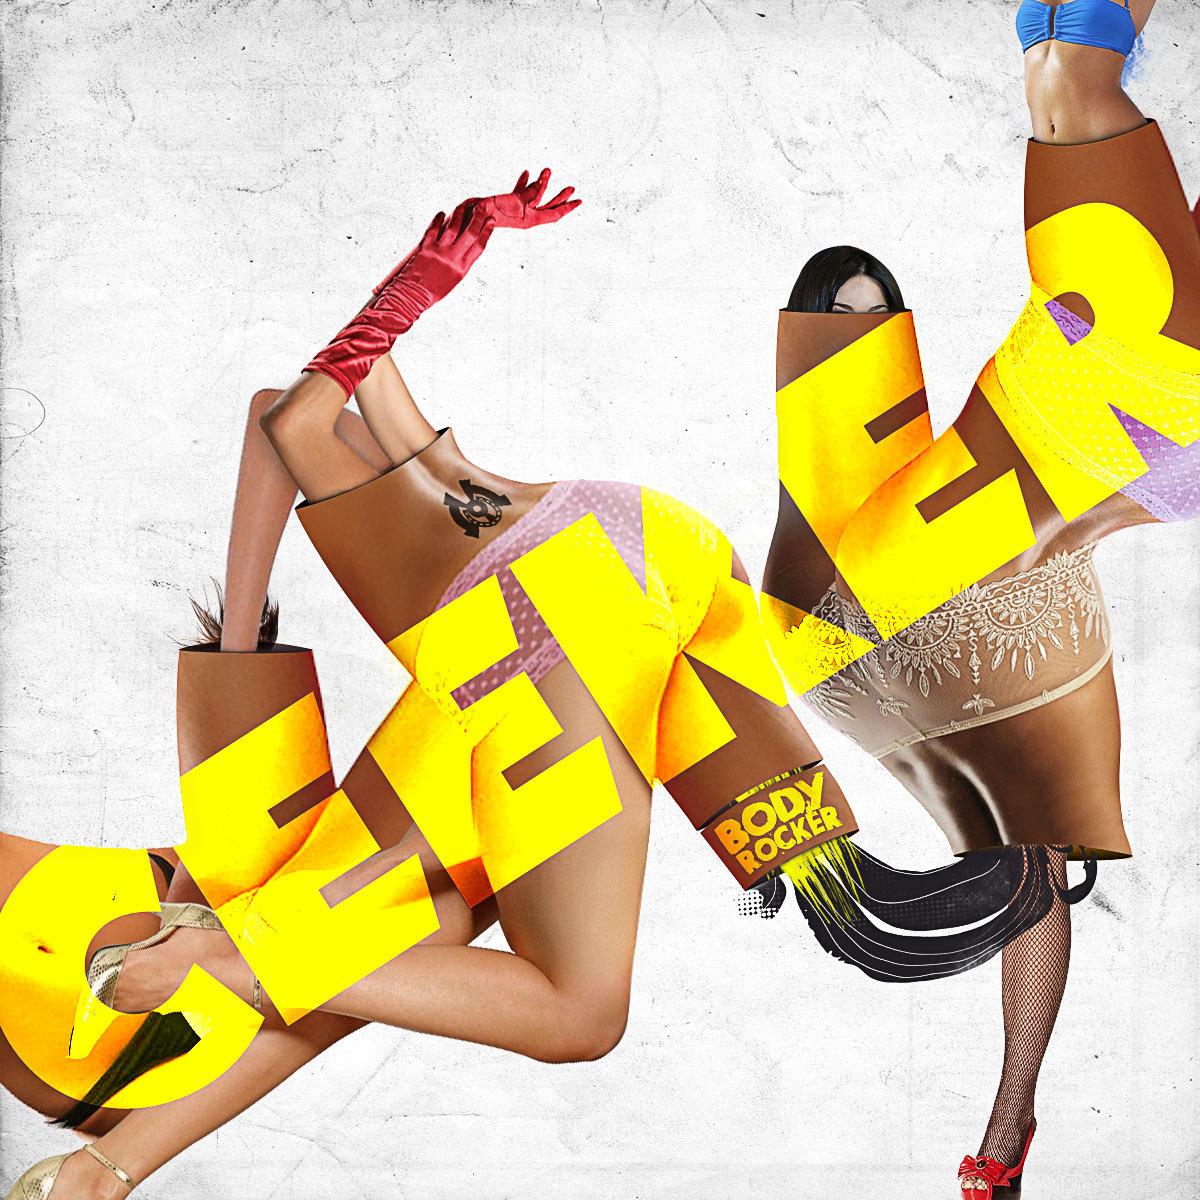 Ceeker - Body Rocker @ 'Body Rocker' album (electronic, dubstep)